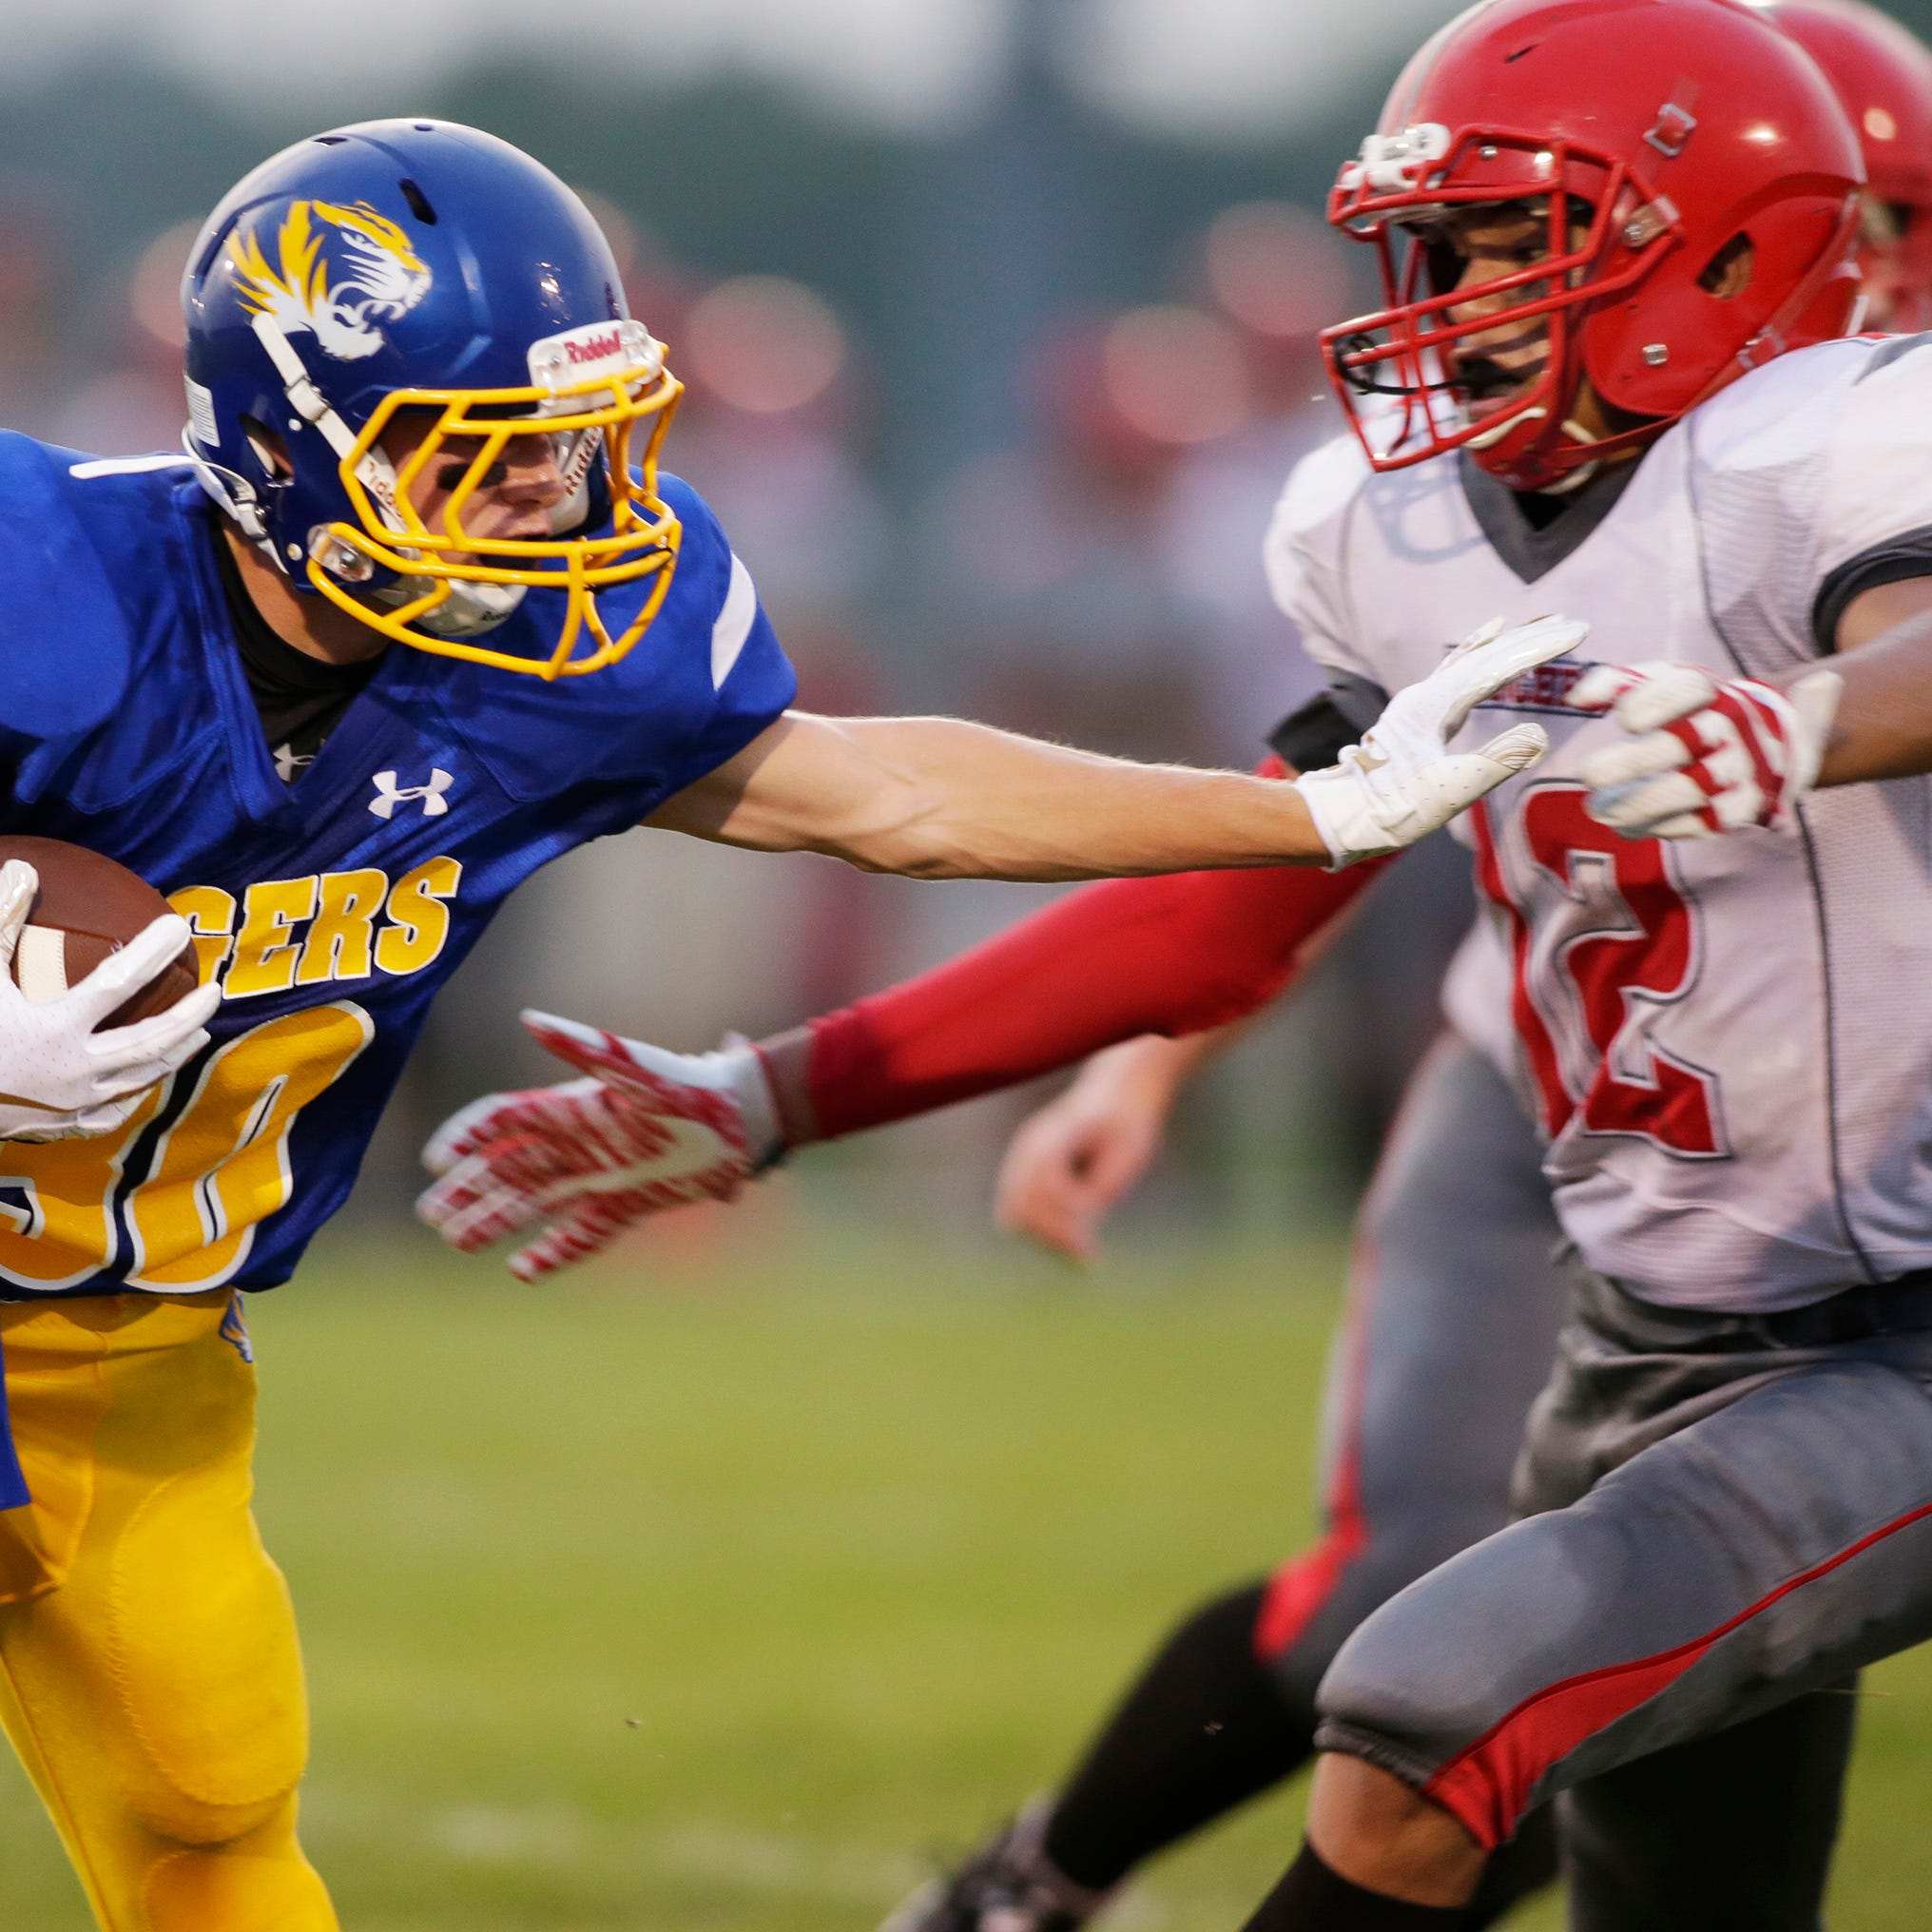 Top 10 performers: Reedsville QB Carson Schanilec's 6 TDs leads way